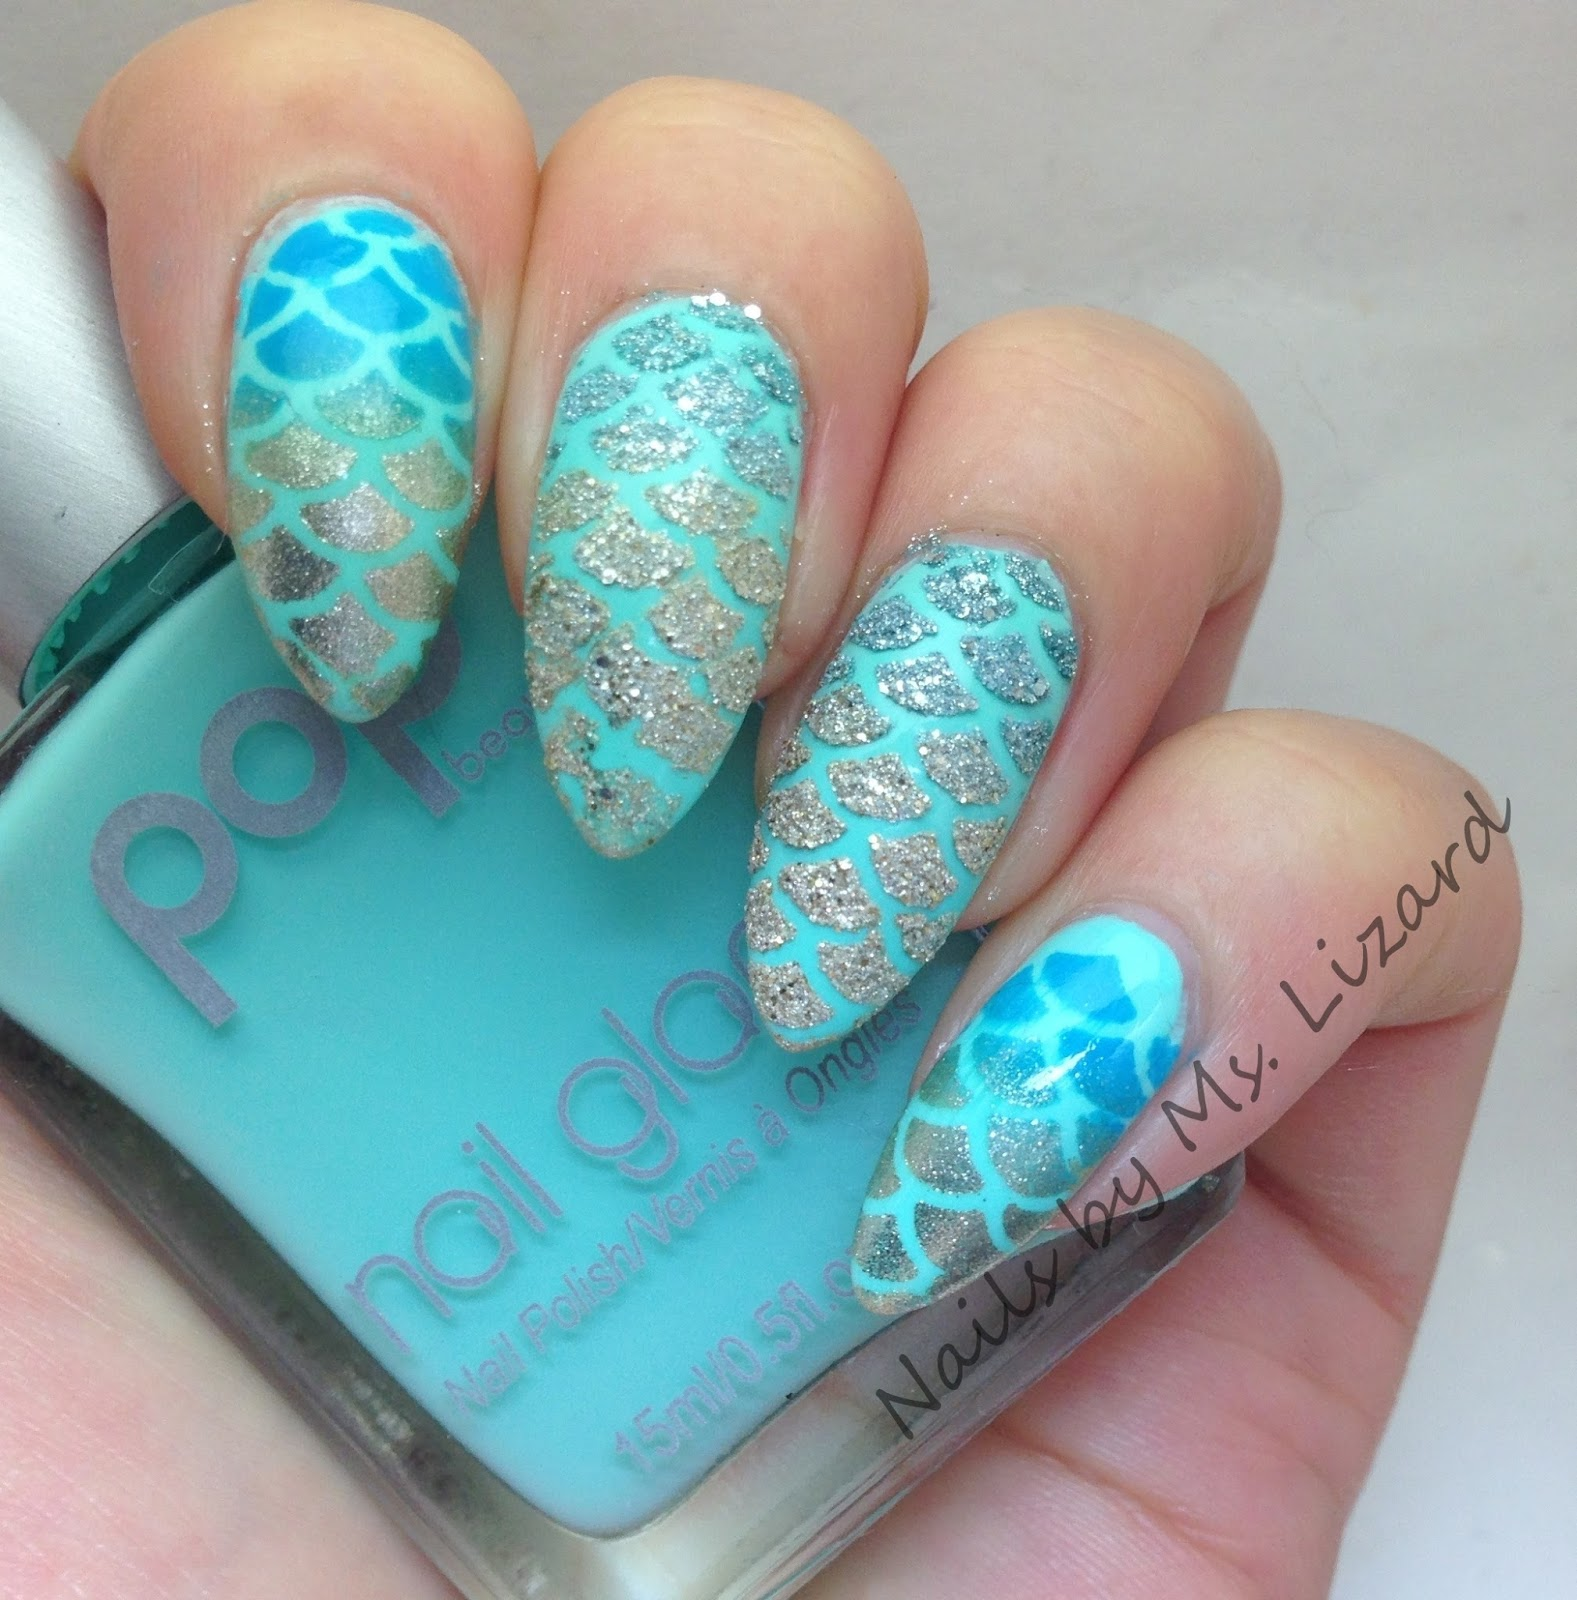 Nails by ms lizard born pretty store 12 tipssheet fish scale my sample manicure using the stencils prinsesfo Choice Image